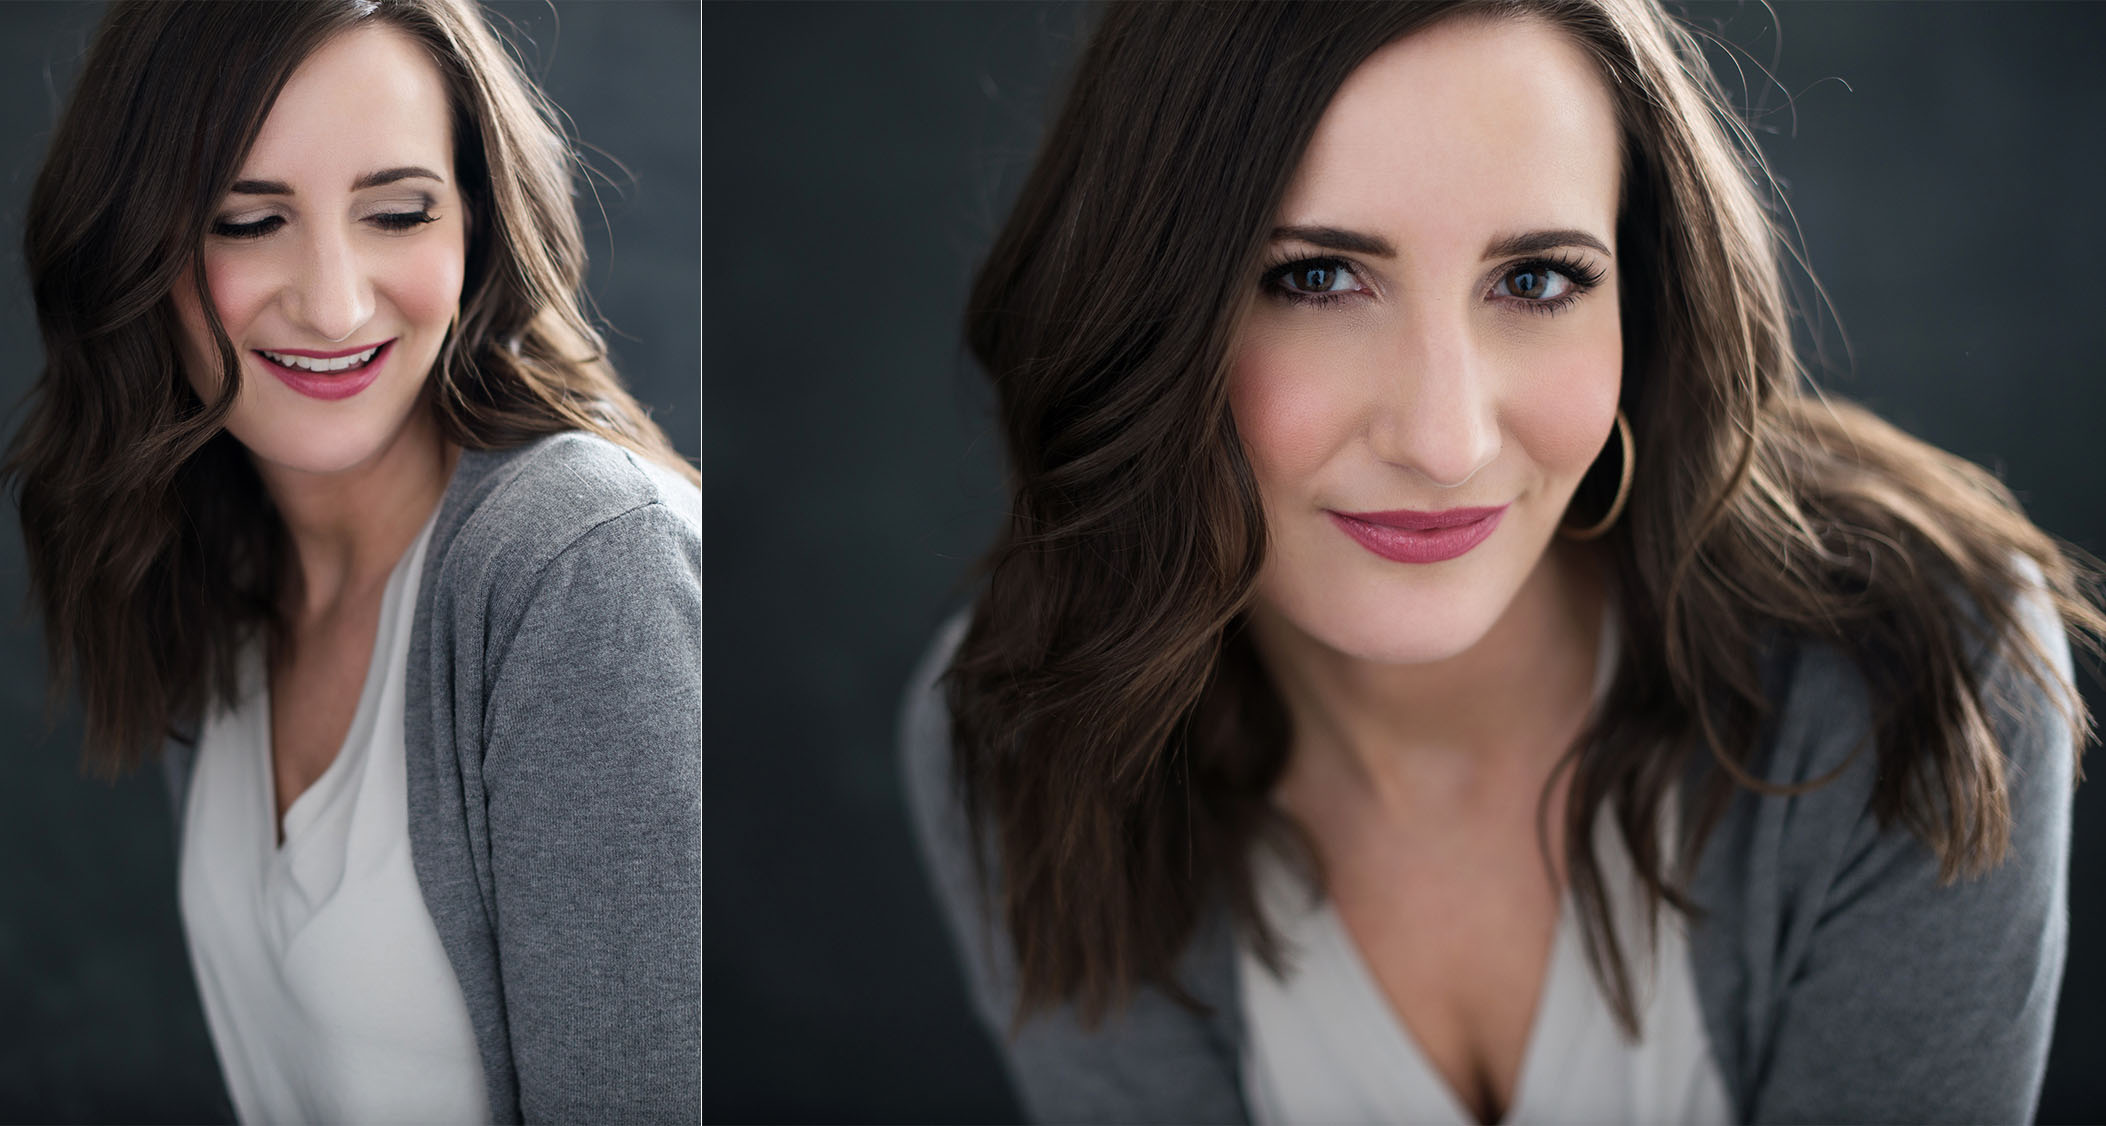 minneapolis-headshot-glamour-studio-phot